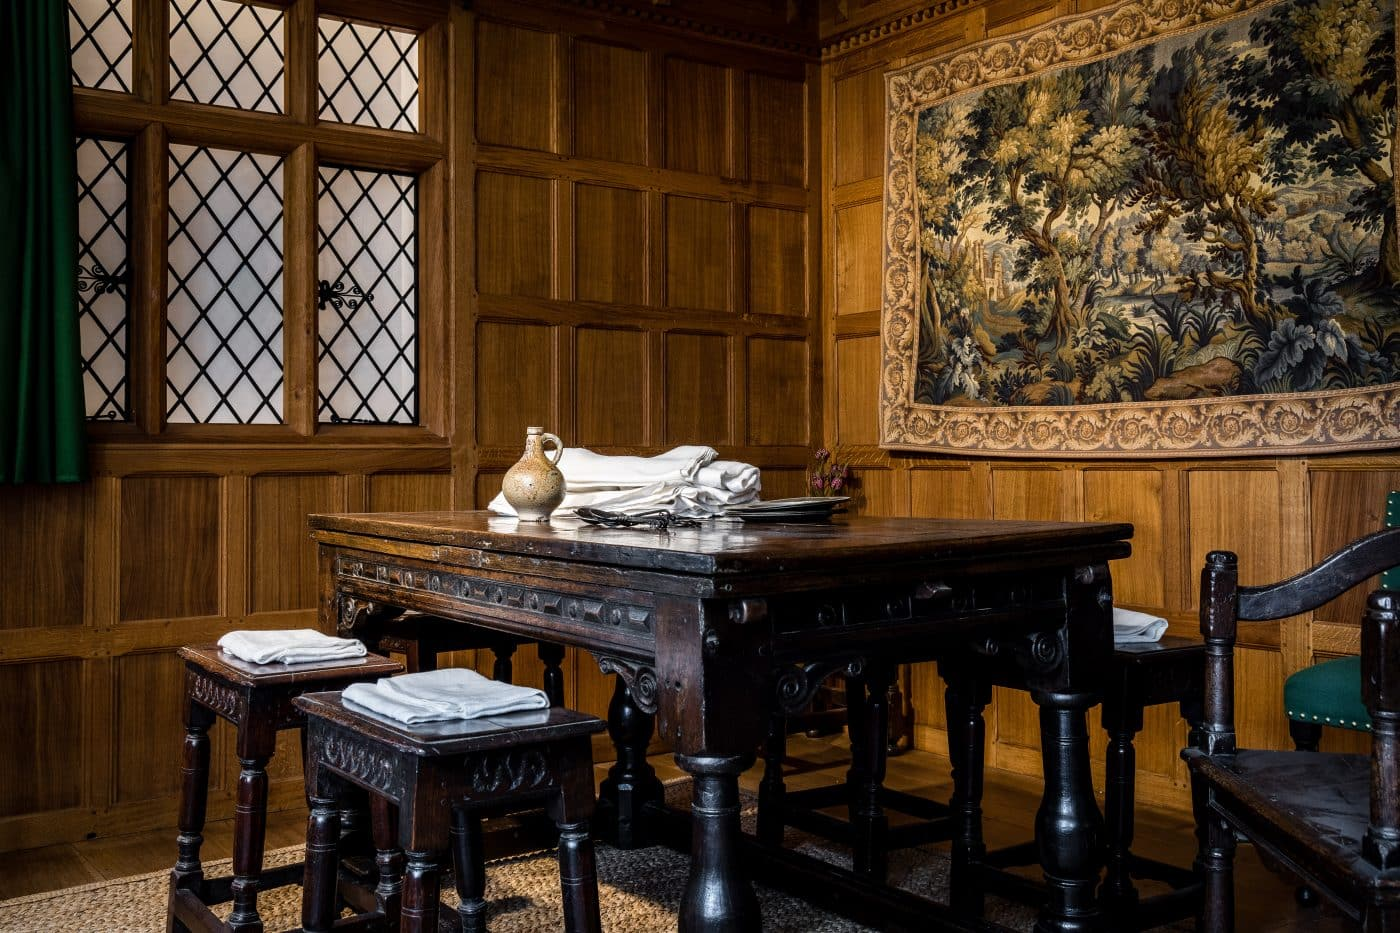 A display inside the Museum of the Home featuring a 1630 table and tapestry